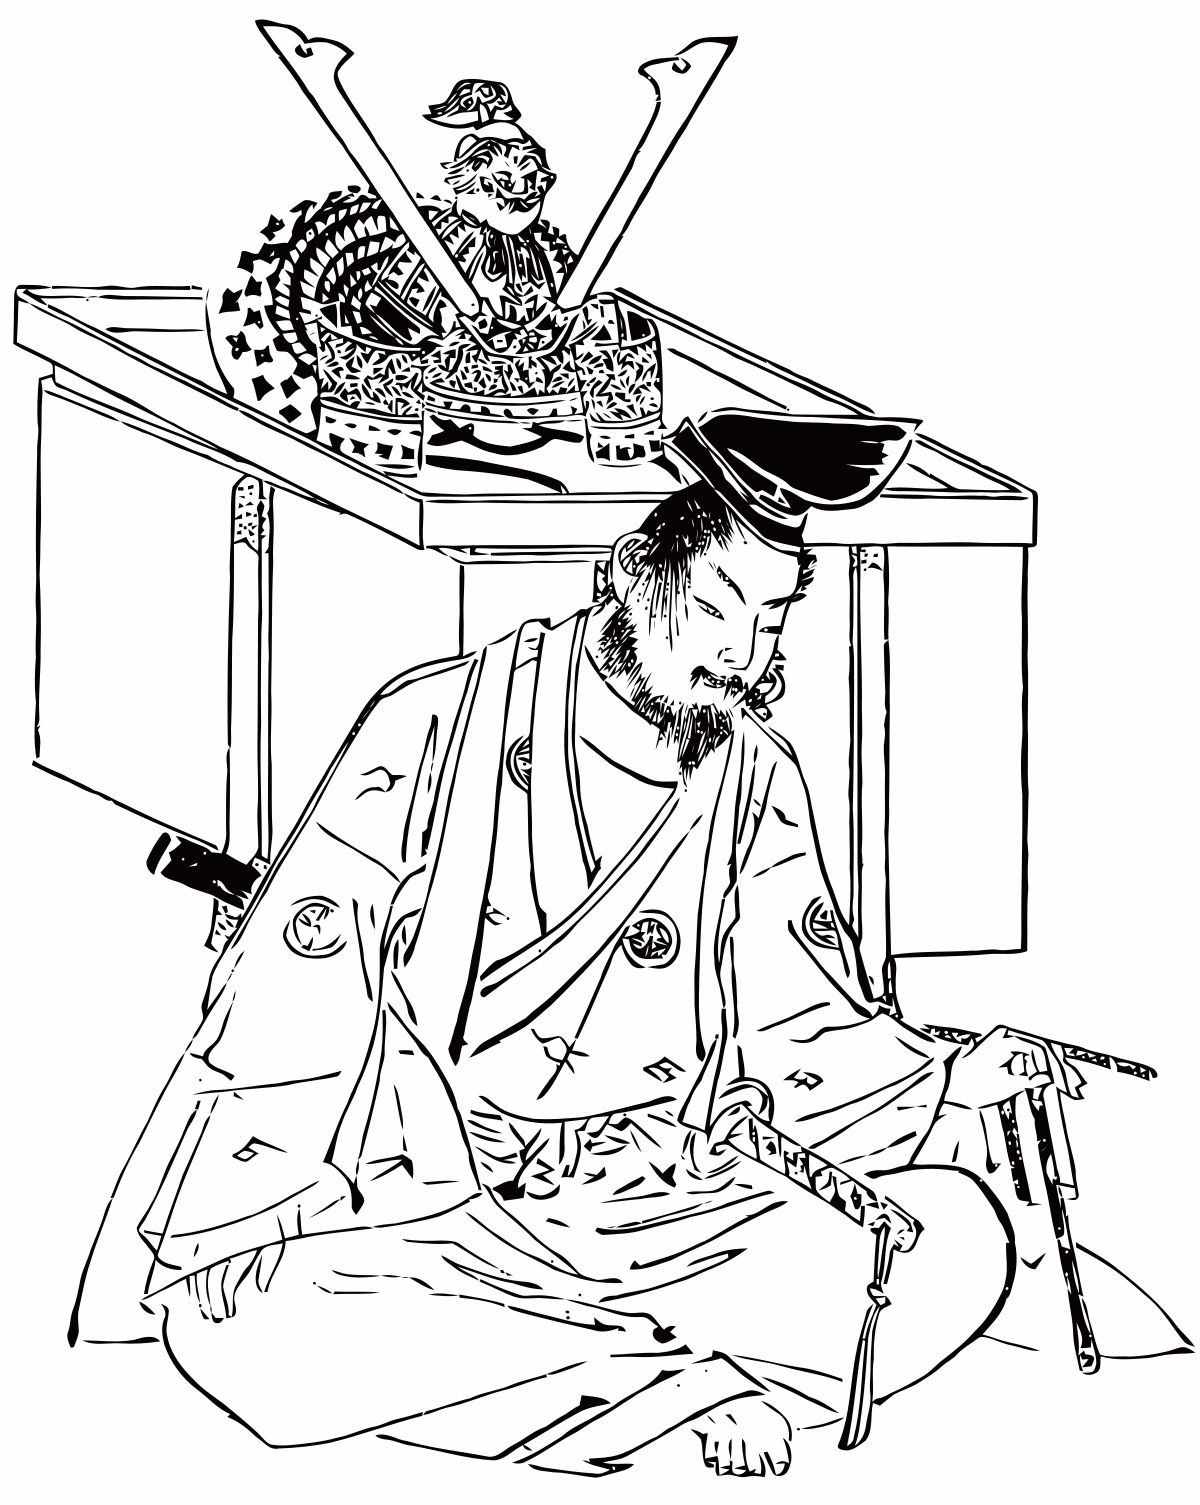 Drawing samurai temple. Minamoto no yoshitsune wikipedia